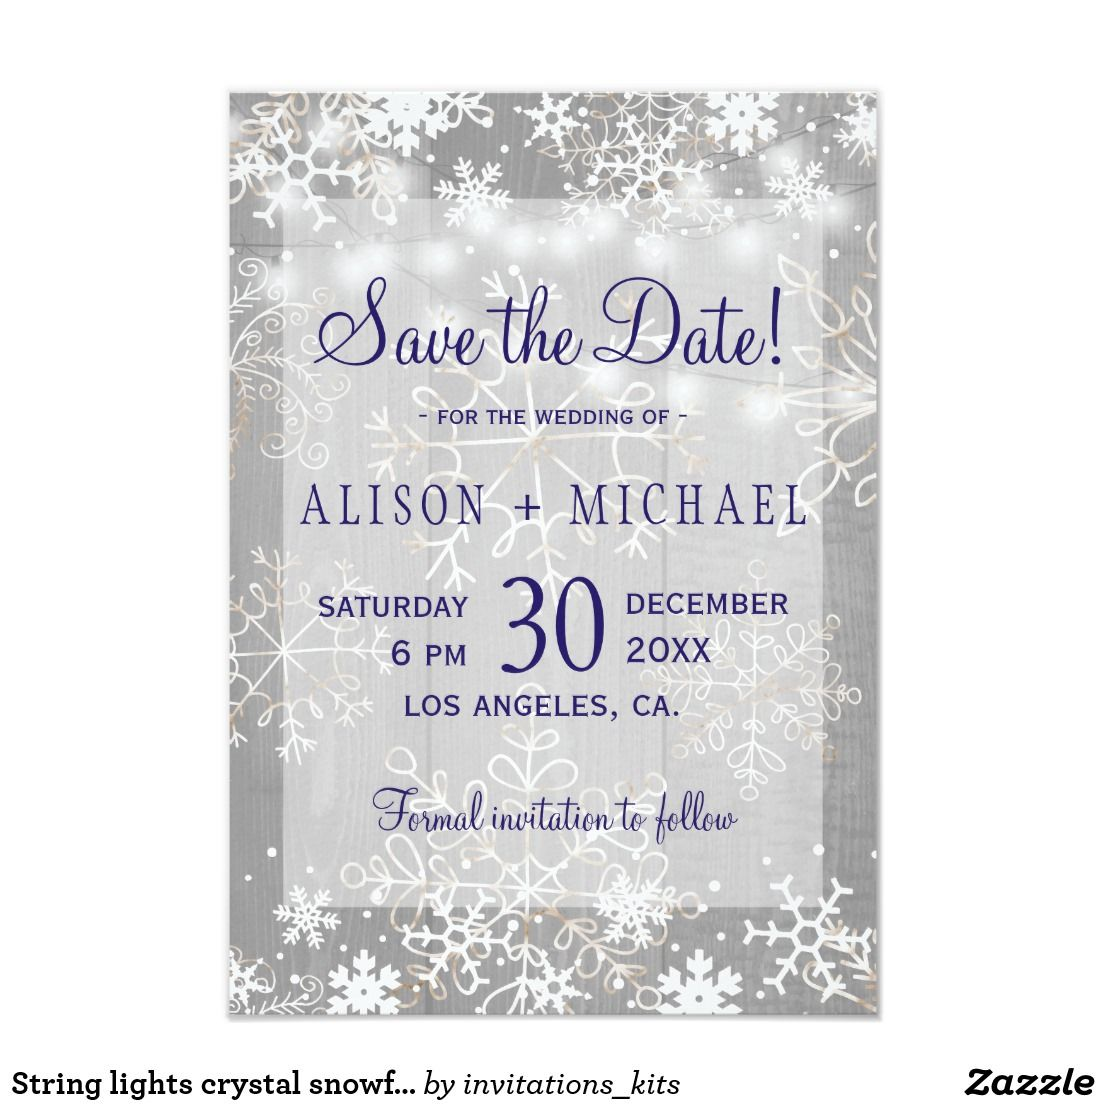 String lights crystal snowflakes save date wedding card | Navy ...